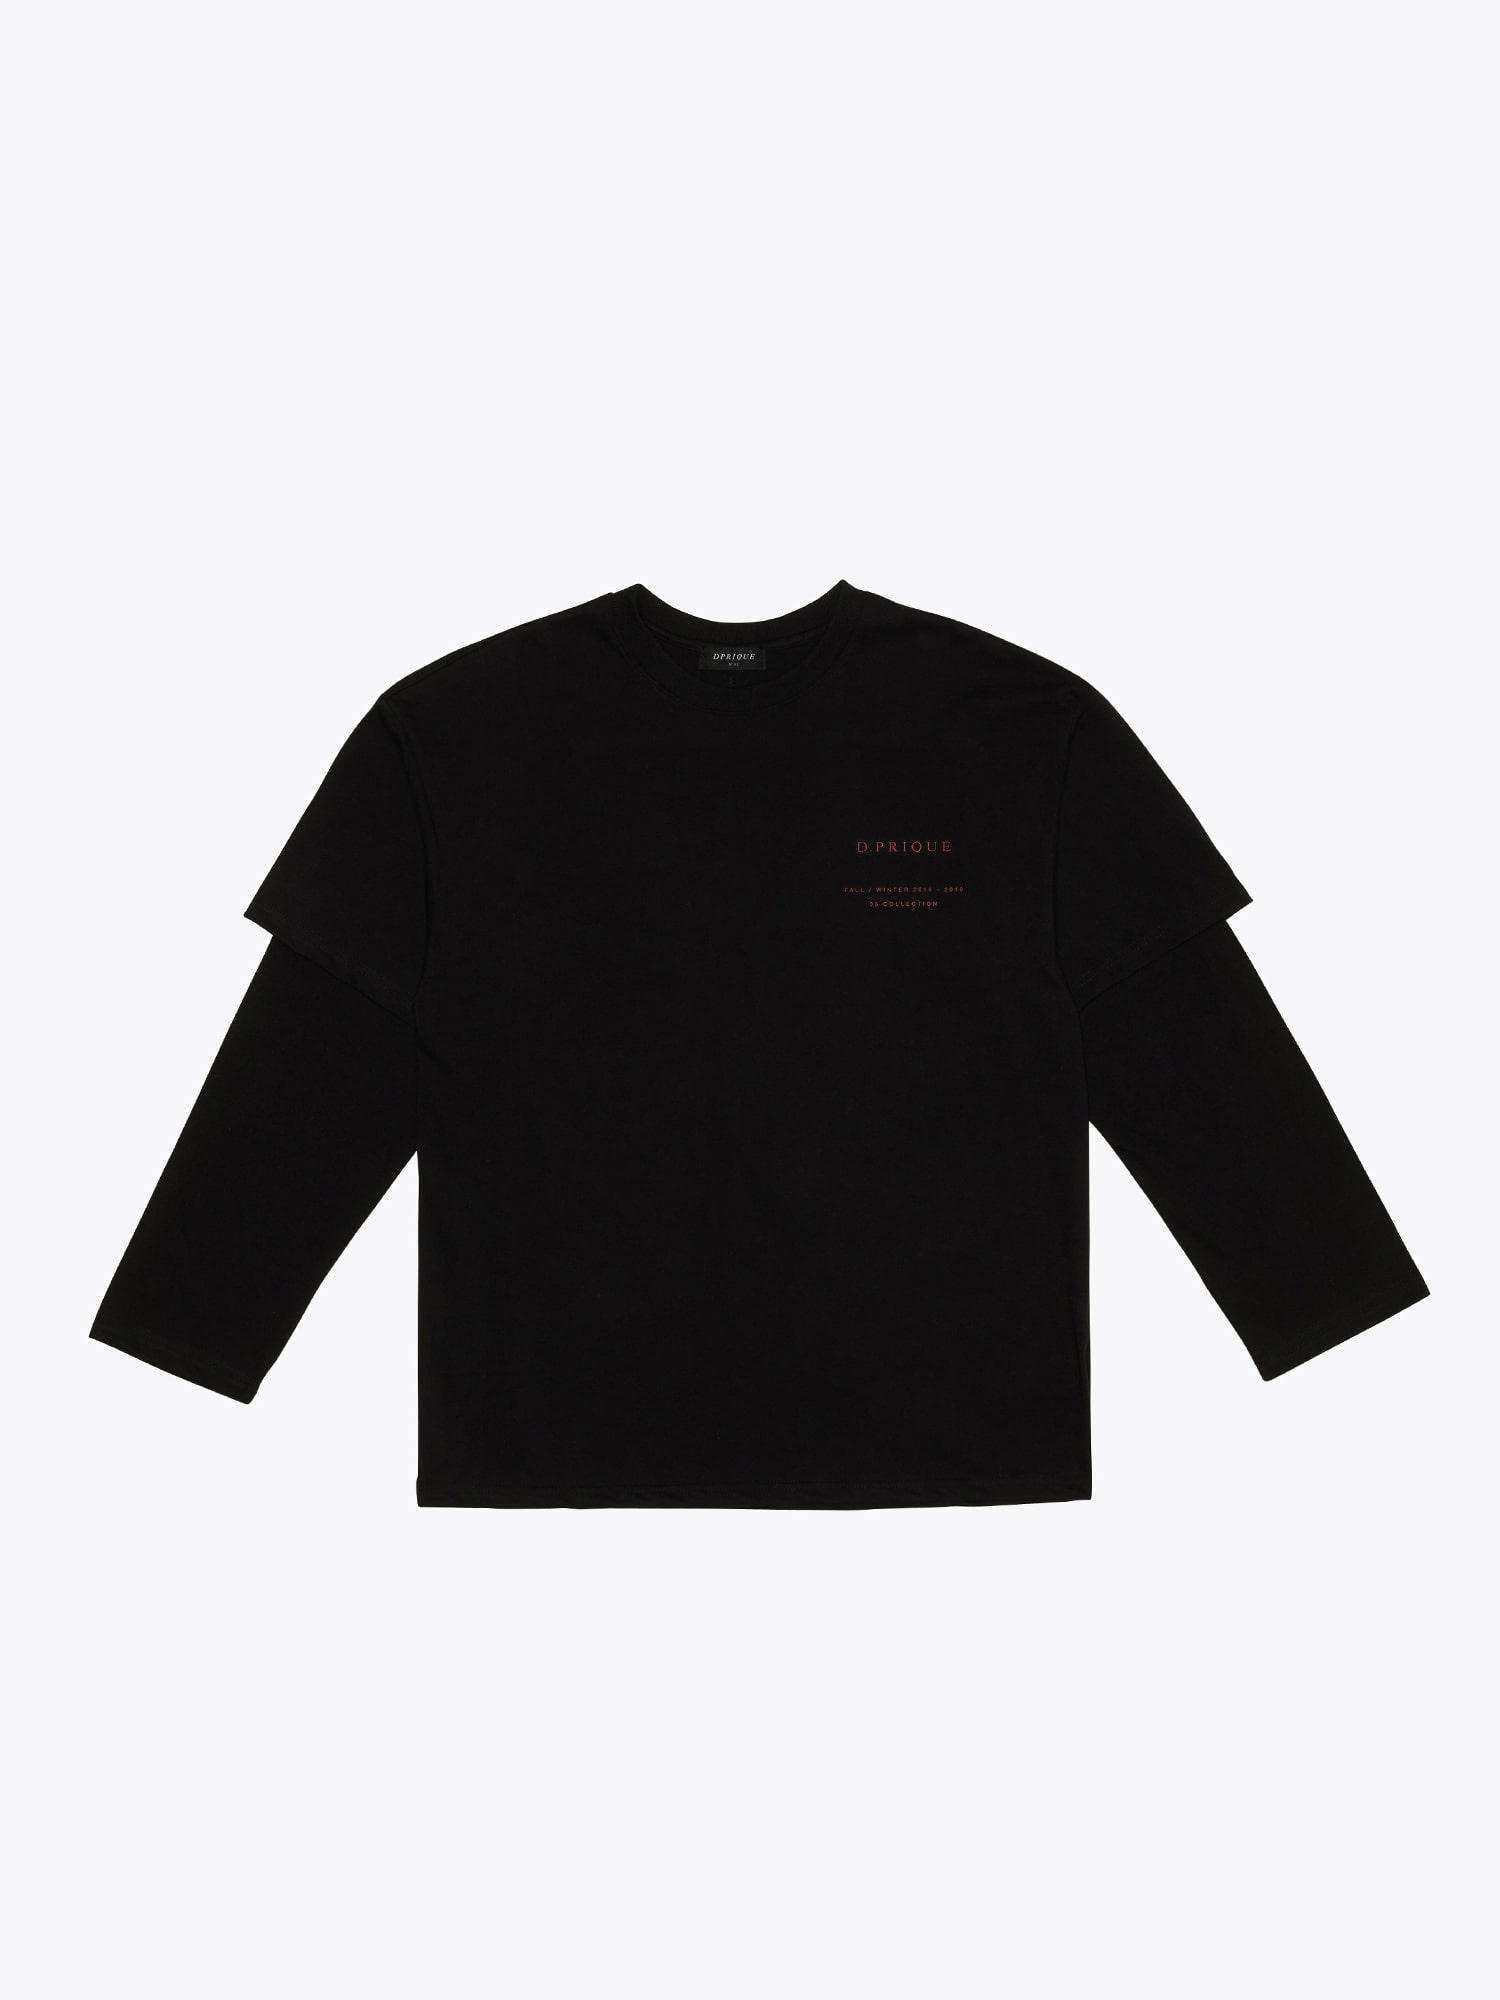 06 Layered T-Shirt - Black